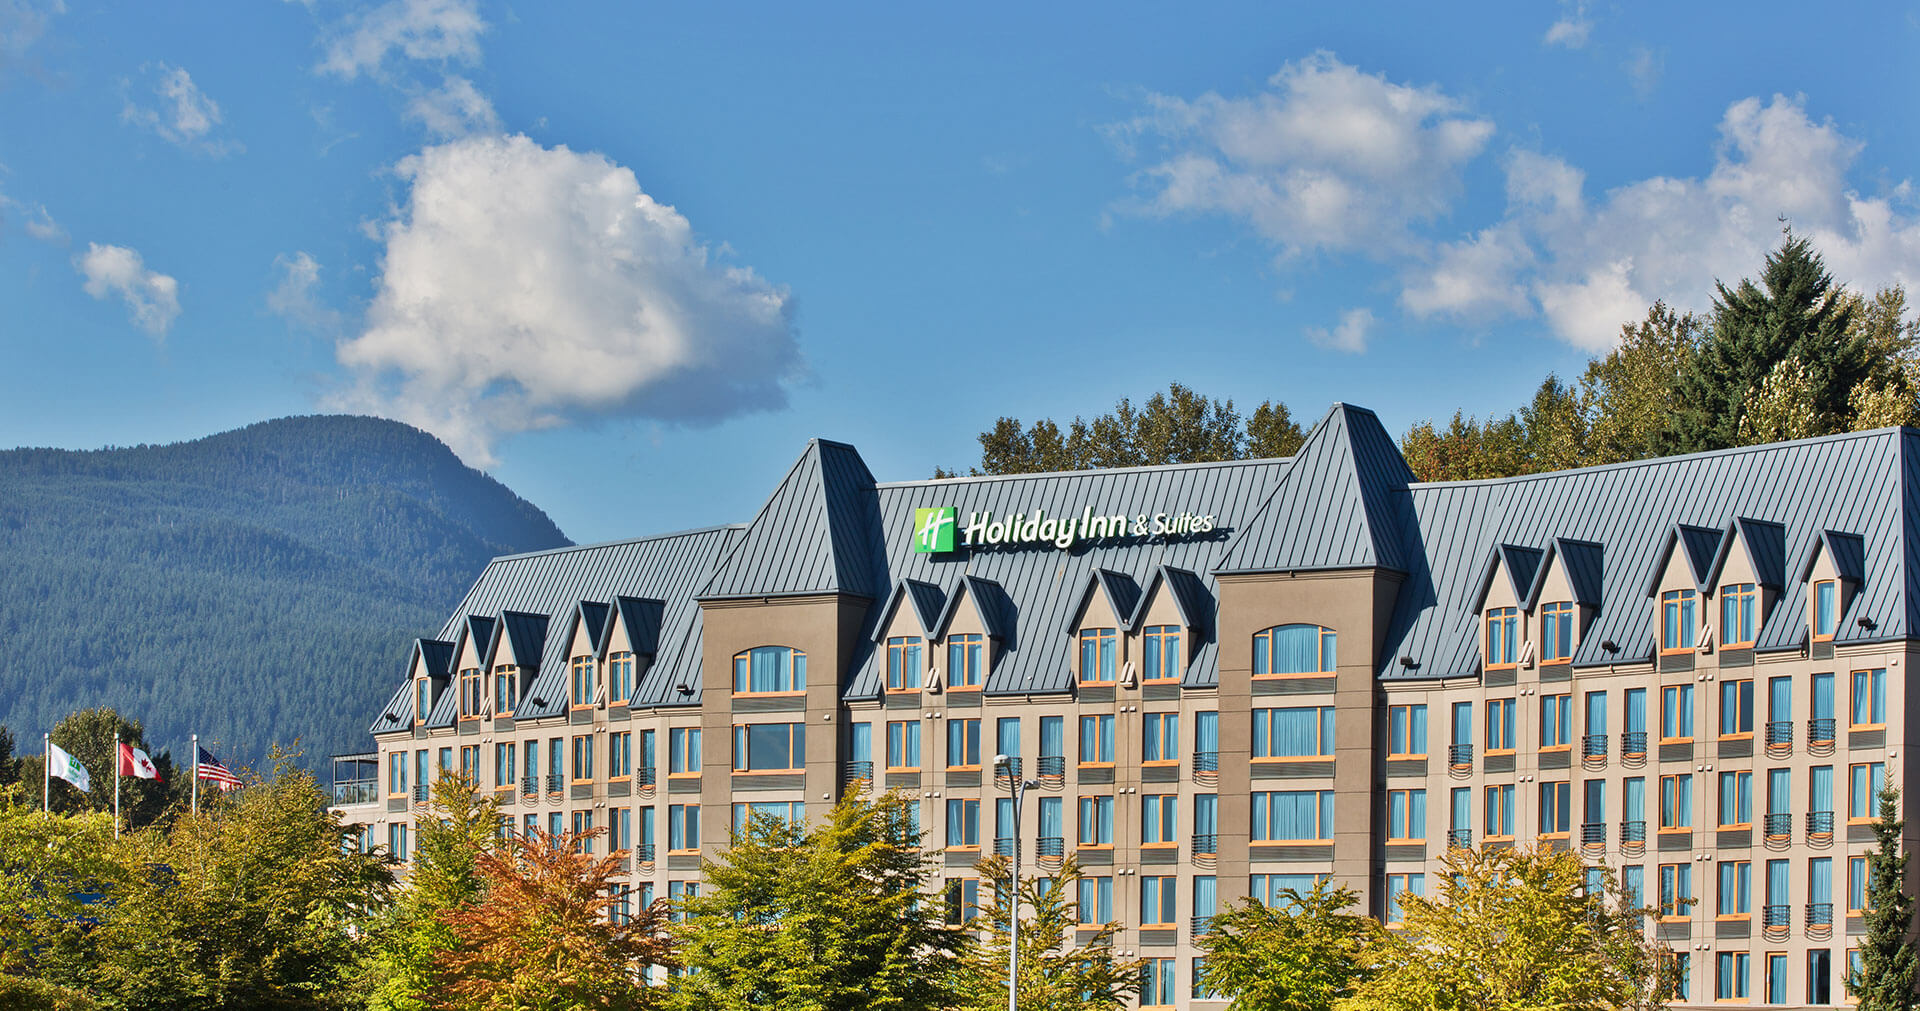 Holiday Inn North Vancouver surrounded by blue skies, trees and mountains